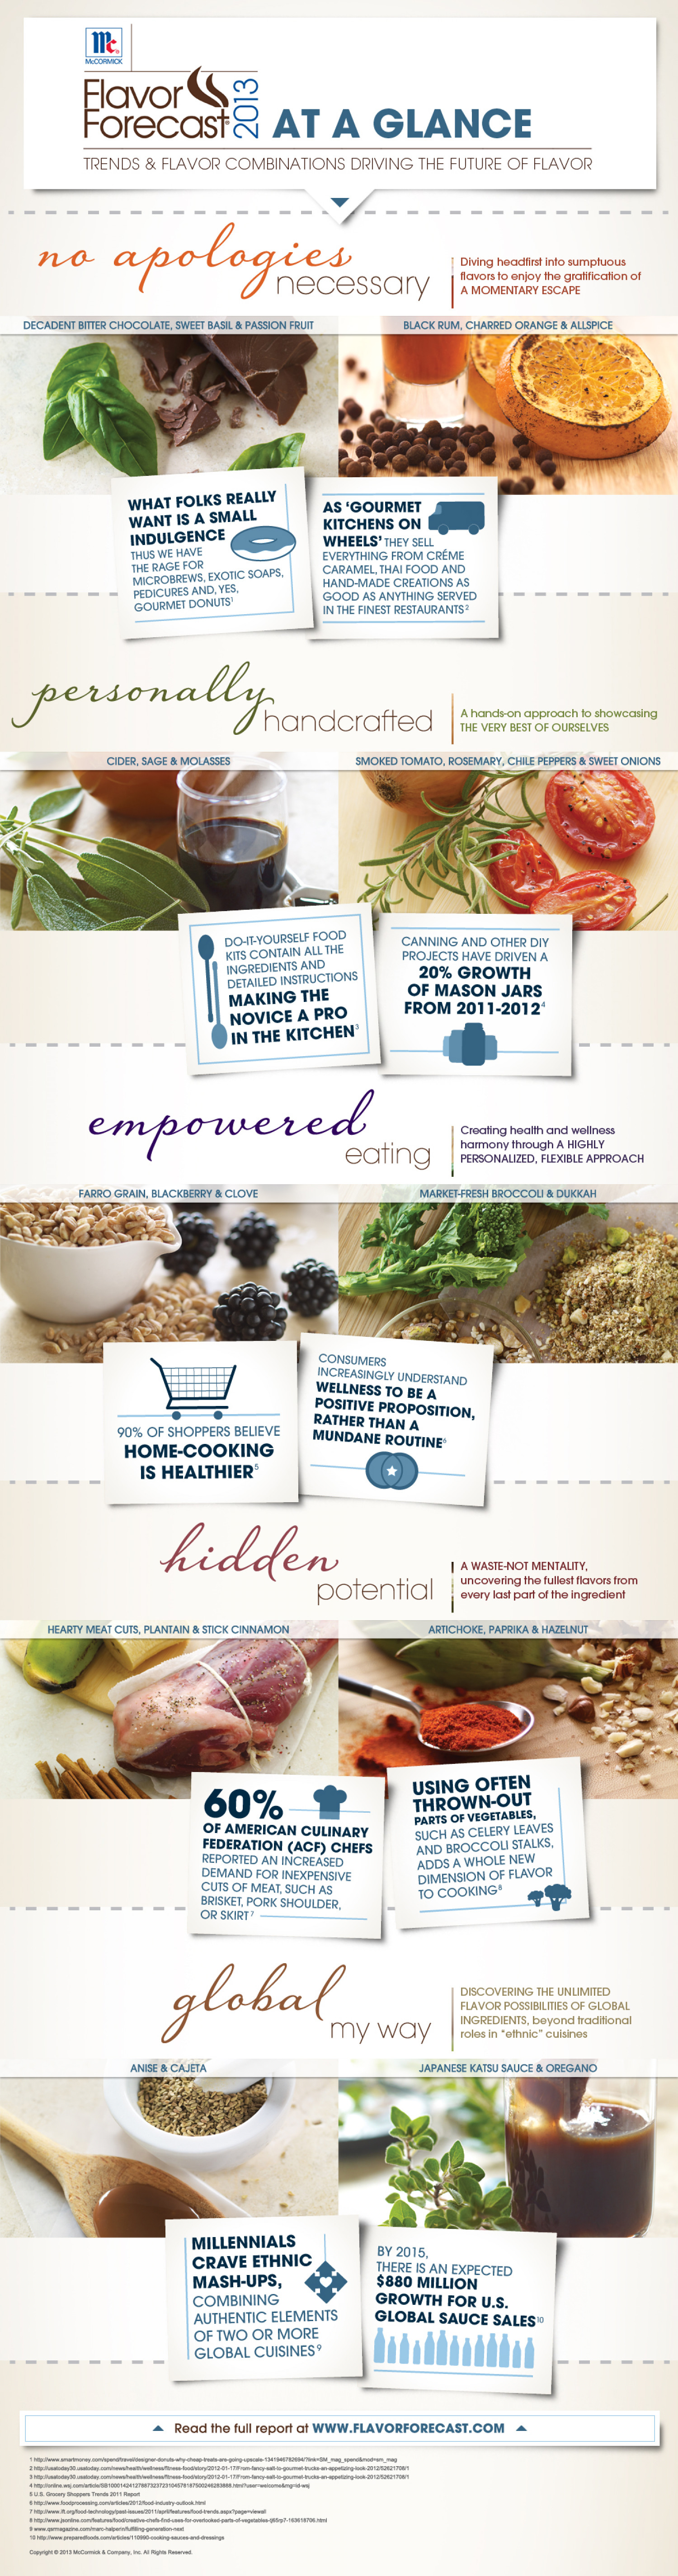 Gourmet Future: A Forecast on Flavors and Taste Trends this 2013 Infographic